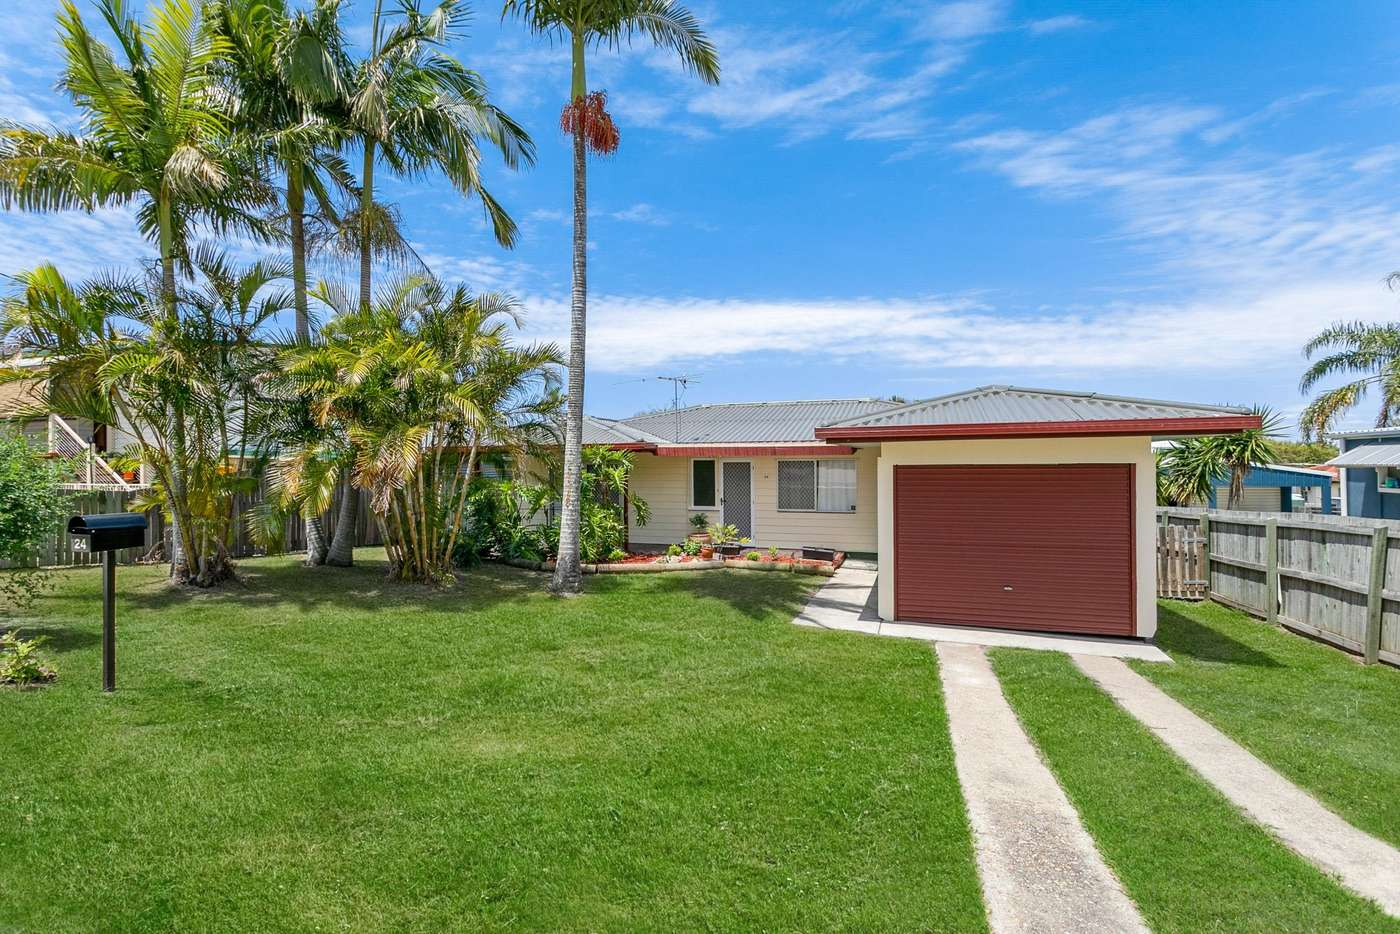 Main view of Homely house listing, 24 Southwell Street, Kippa-ring QLD 4021